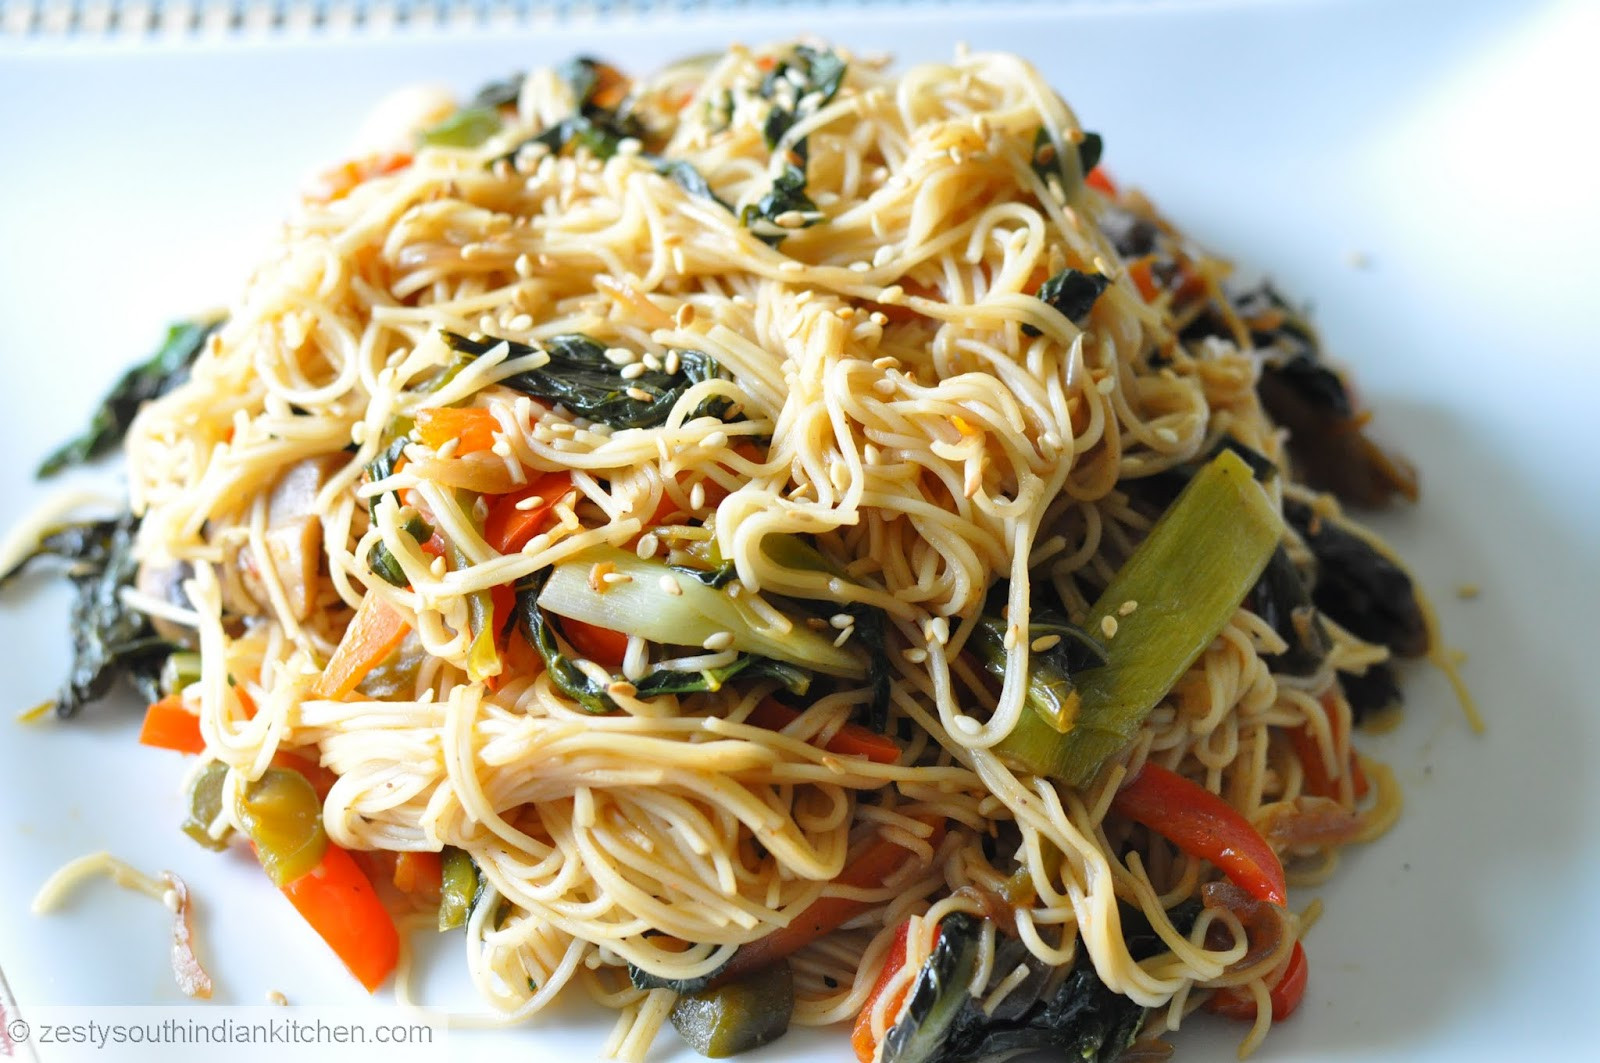 Sweet Potato Noodles Recipe  Japchae Korean sweet potato noodles with Gai lan Chinese